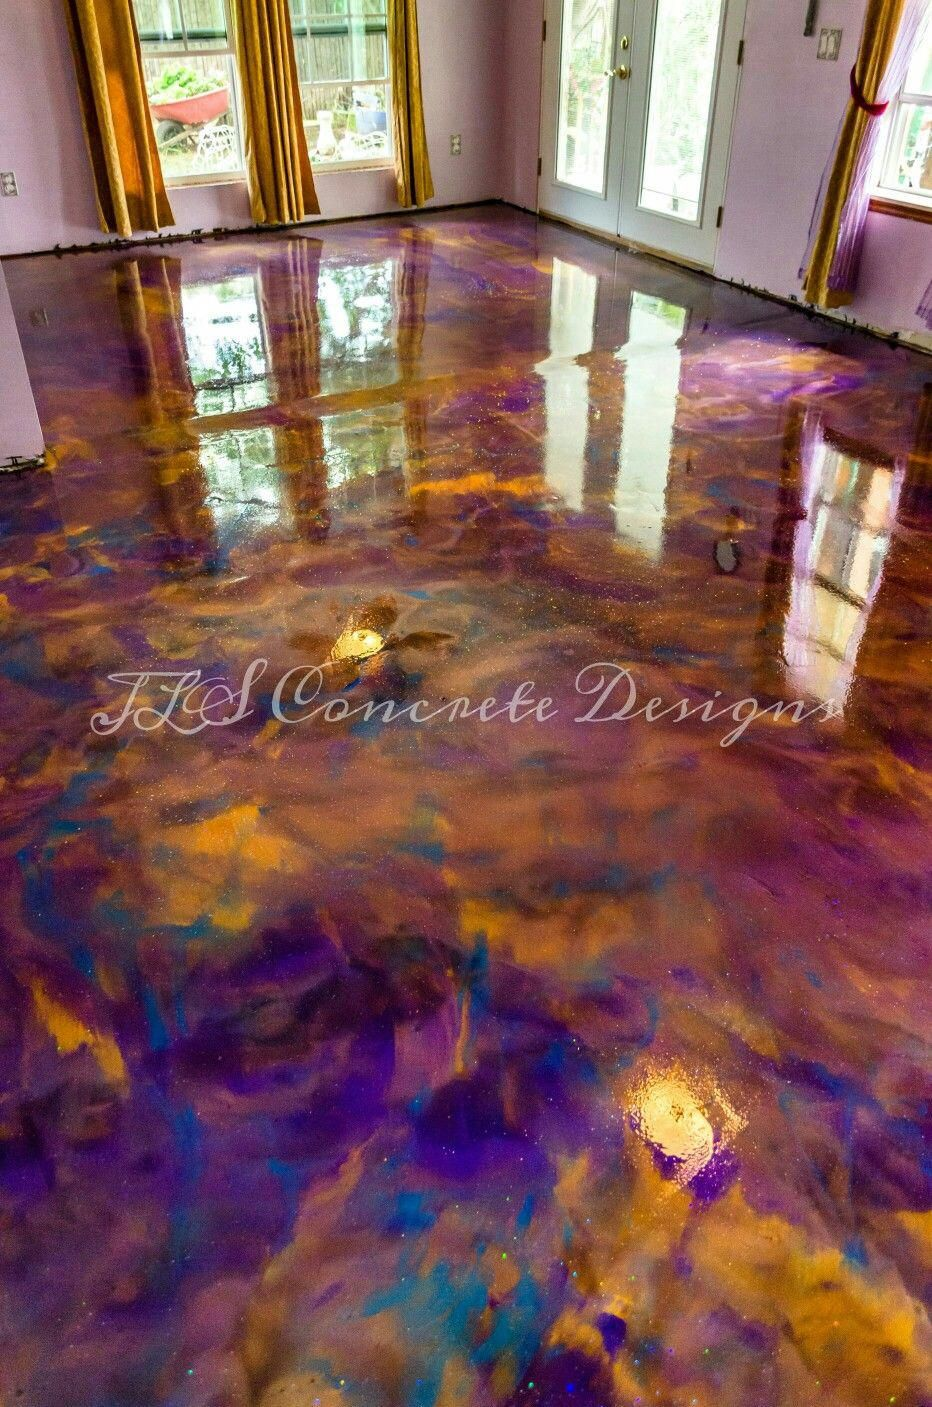 Epoxy floor installed by JLS Concrete Designs in Oklahoma